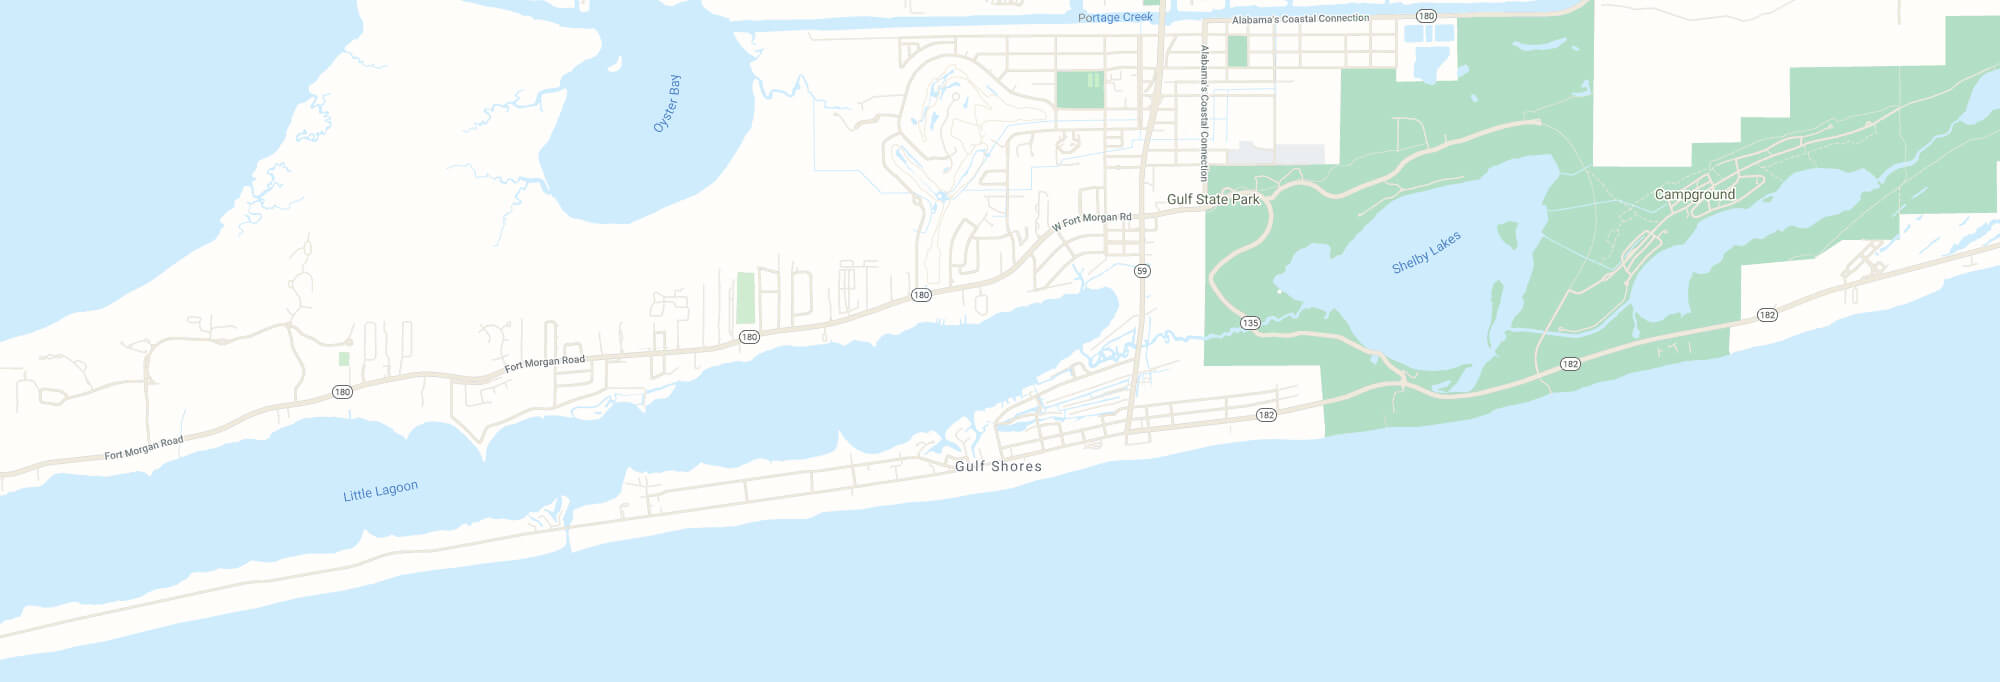 Gulf Shores city map